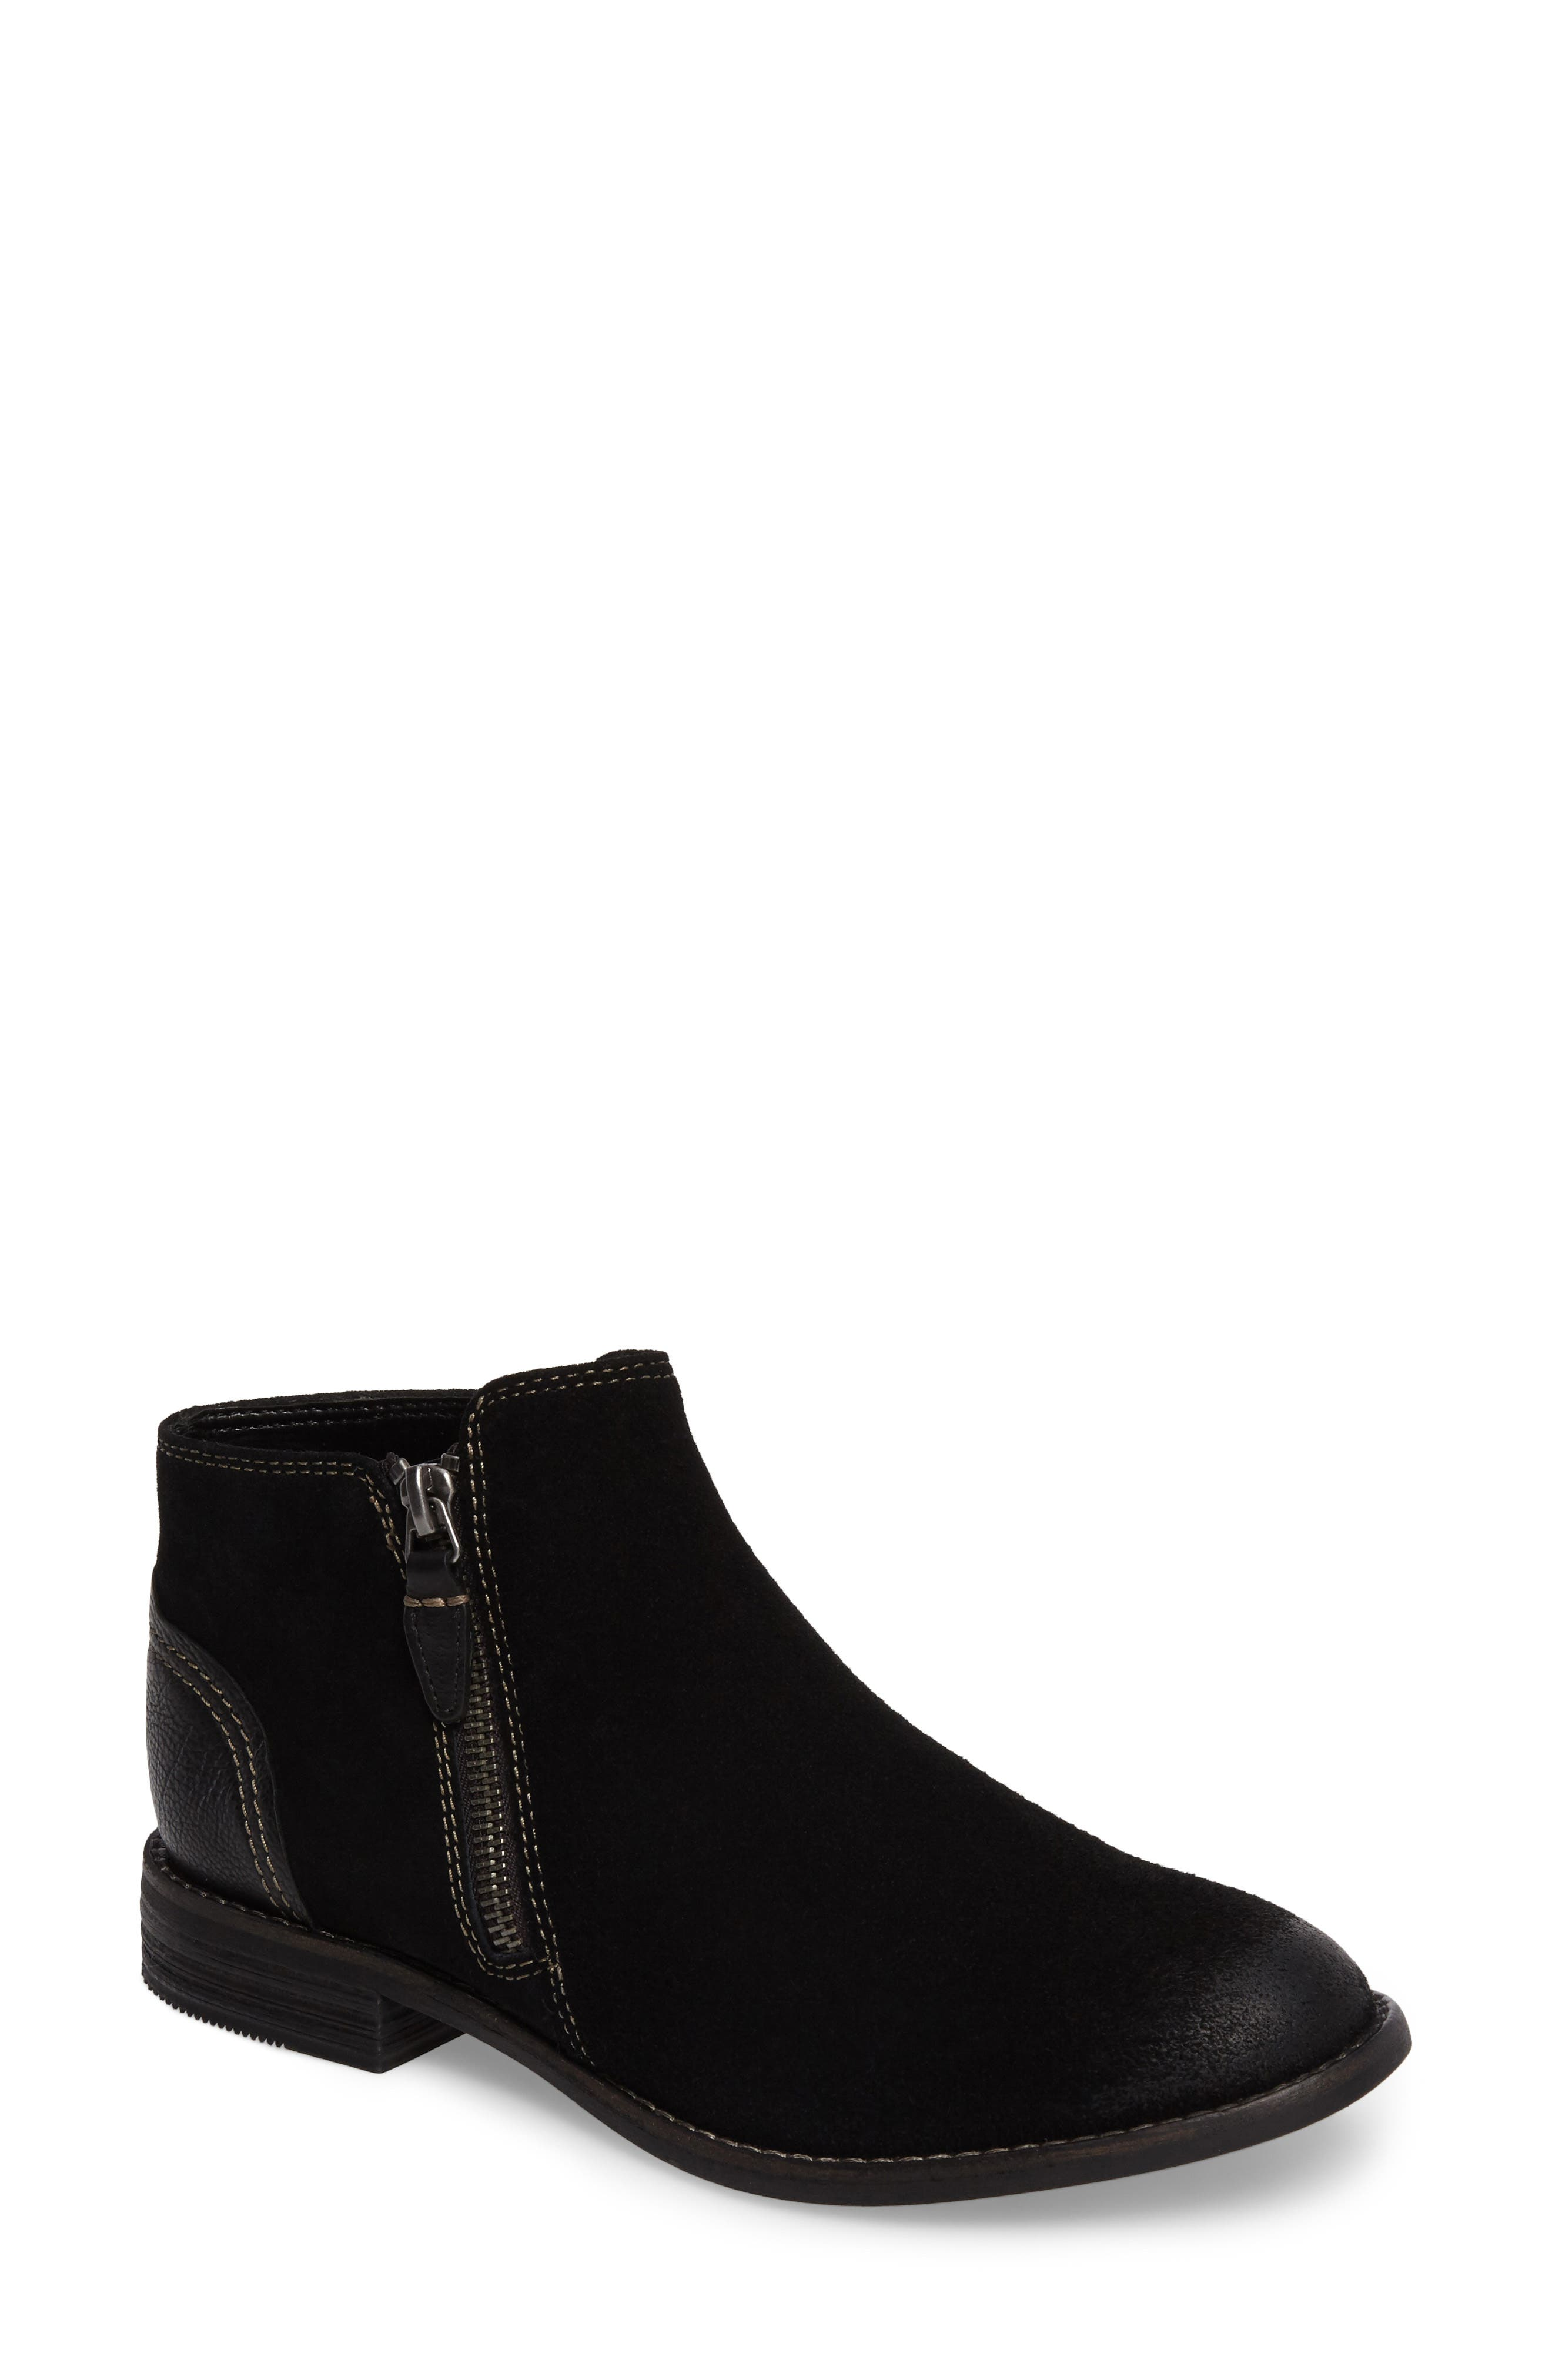 Maypearl Juno Ankle Boot,                             Main thumbnail 1, color,                             BLACK SUEDE